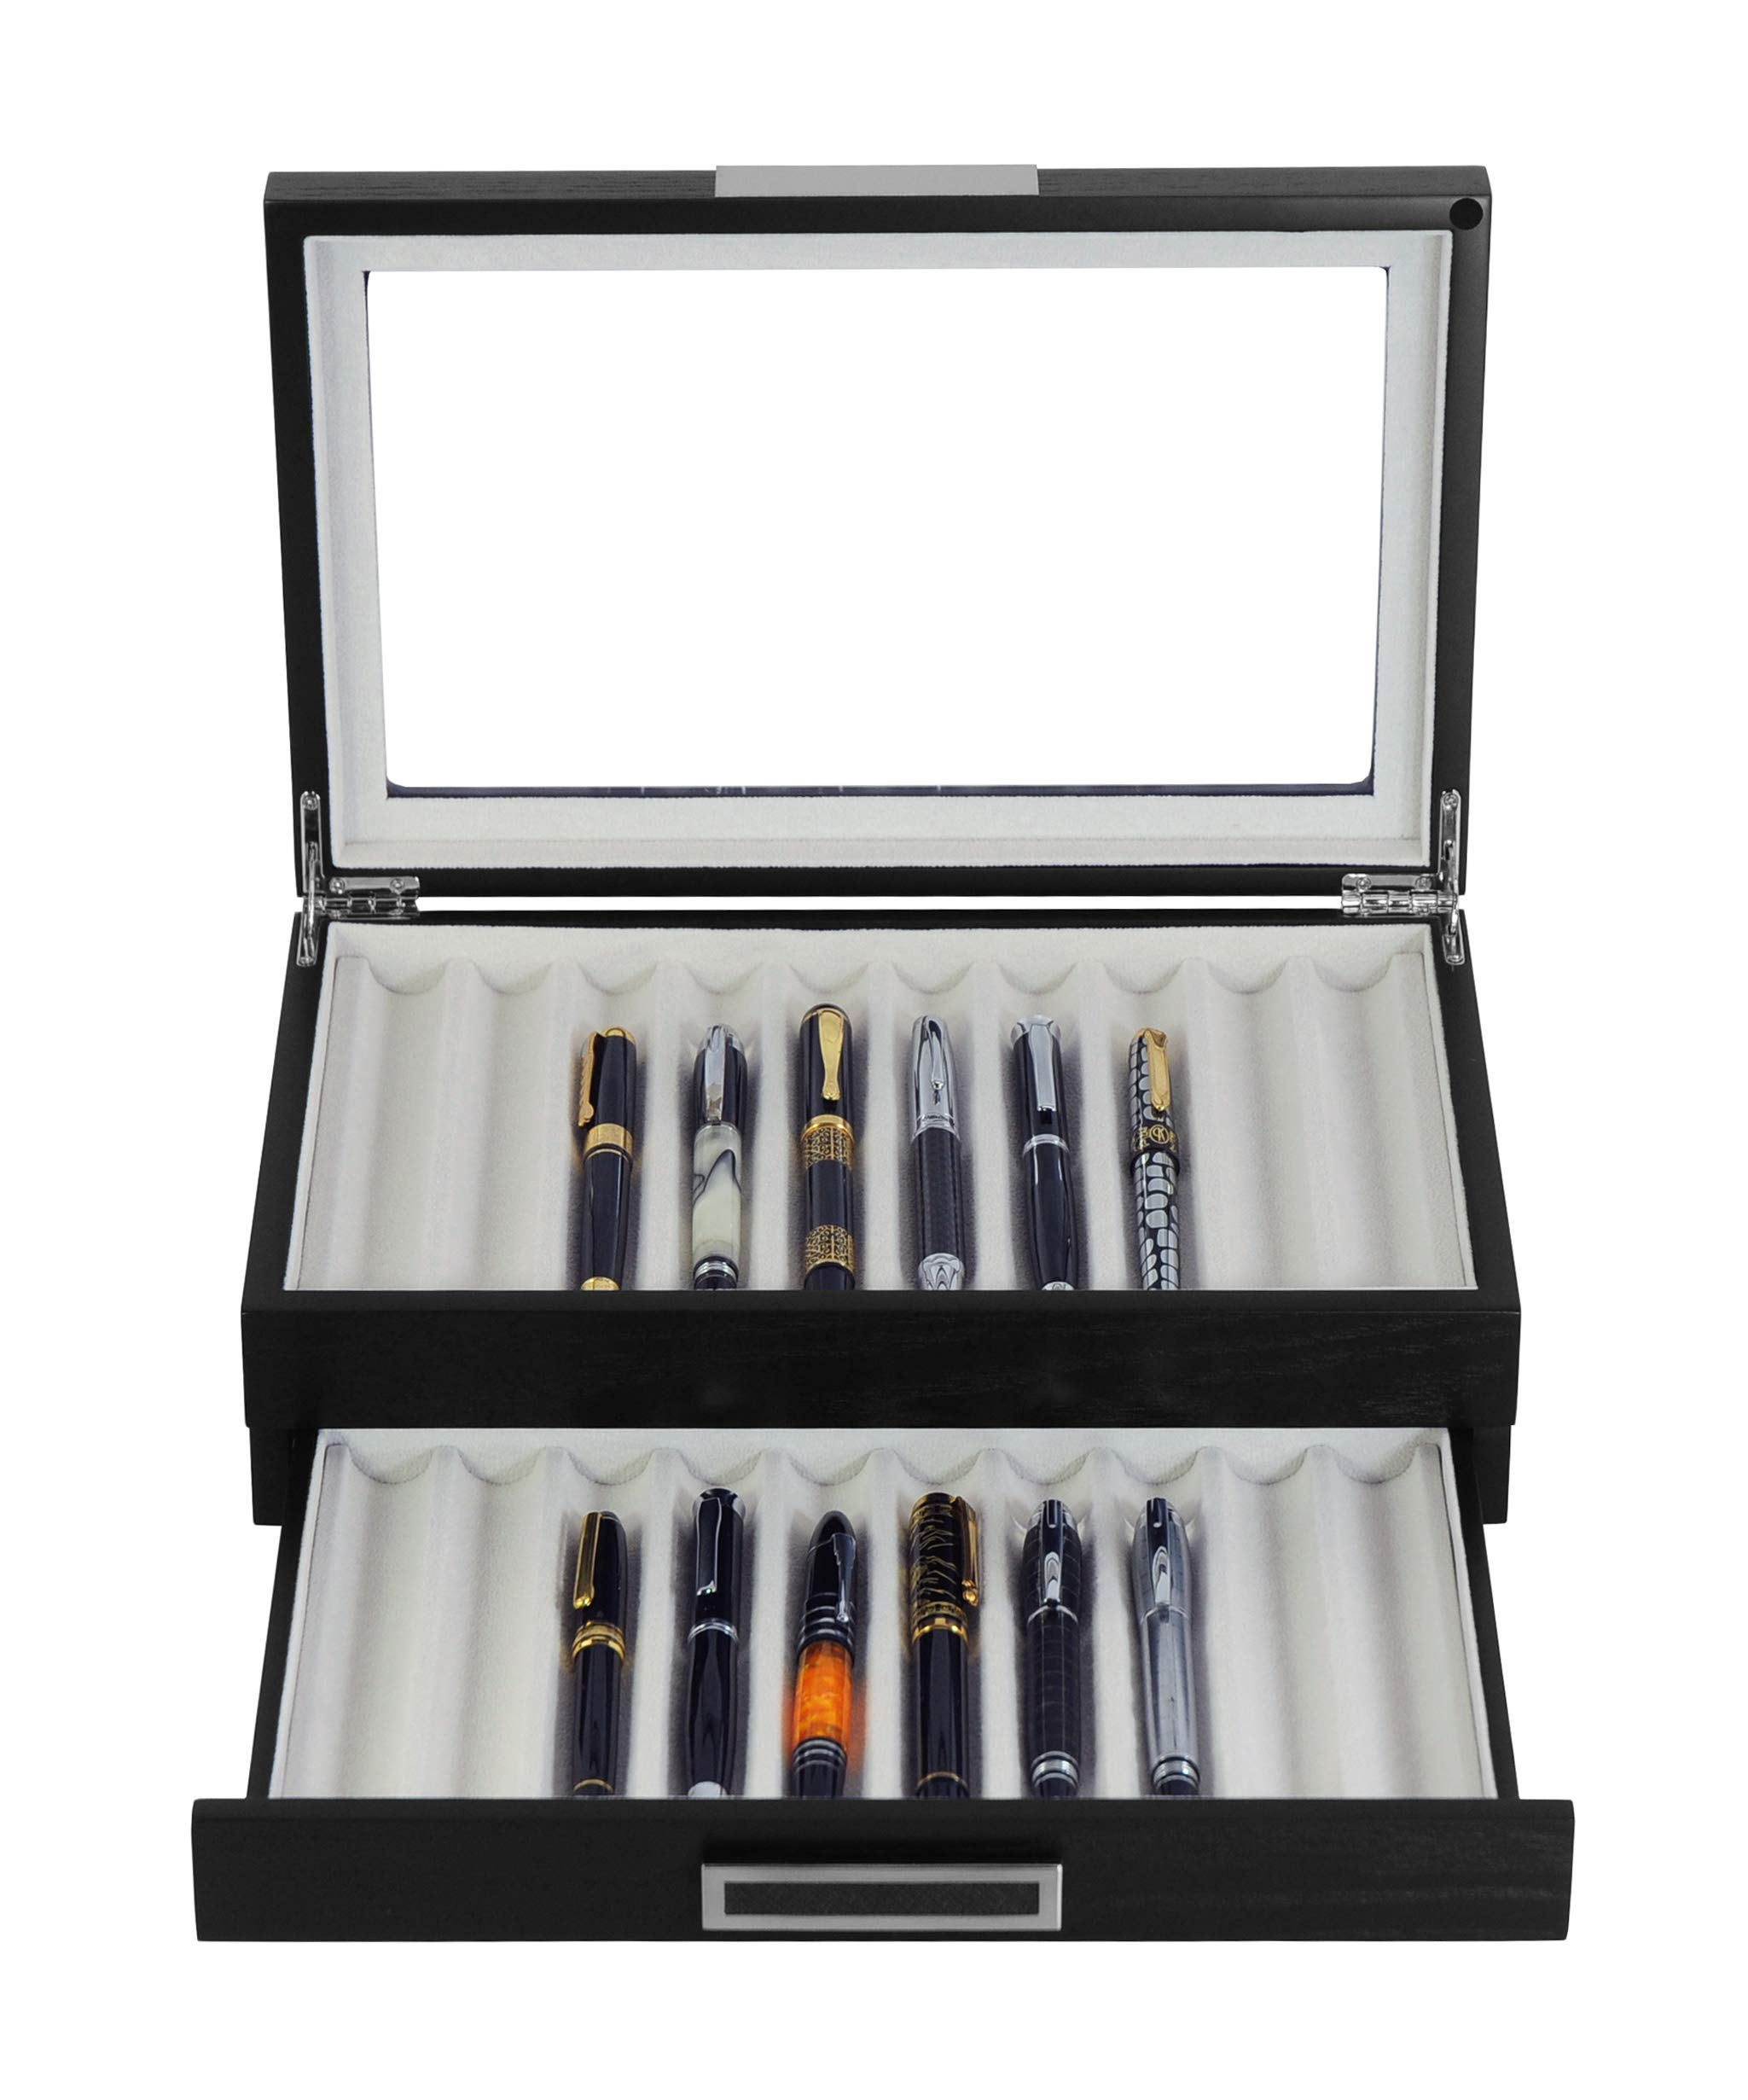 20 Piece Black Ebony Wood Pen Display Case Storage and Fountain Pen Collector Organizer Box with Glass Window Two Level Display Case with Drawer by TimelyBuys